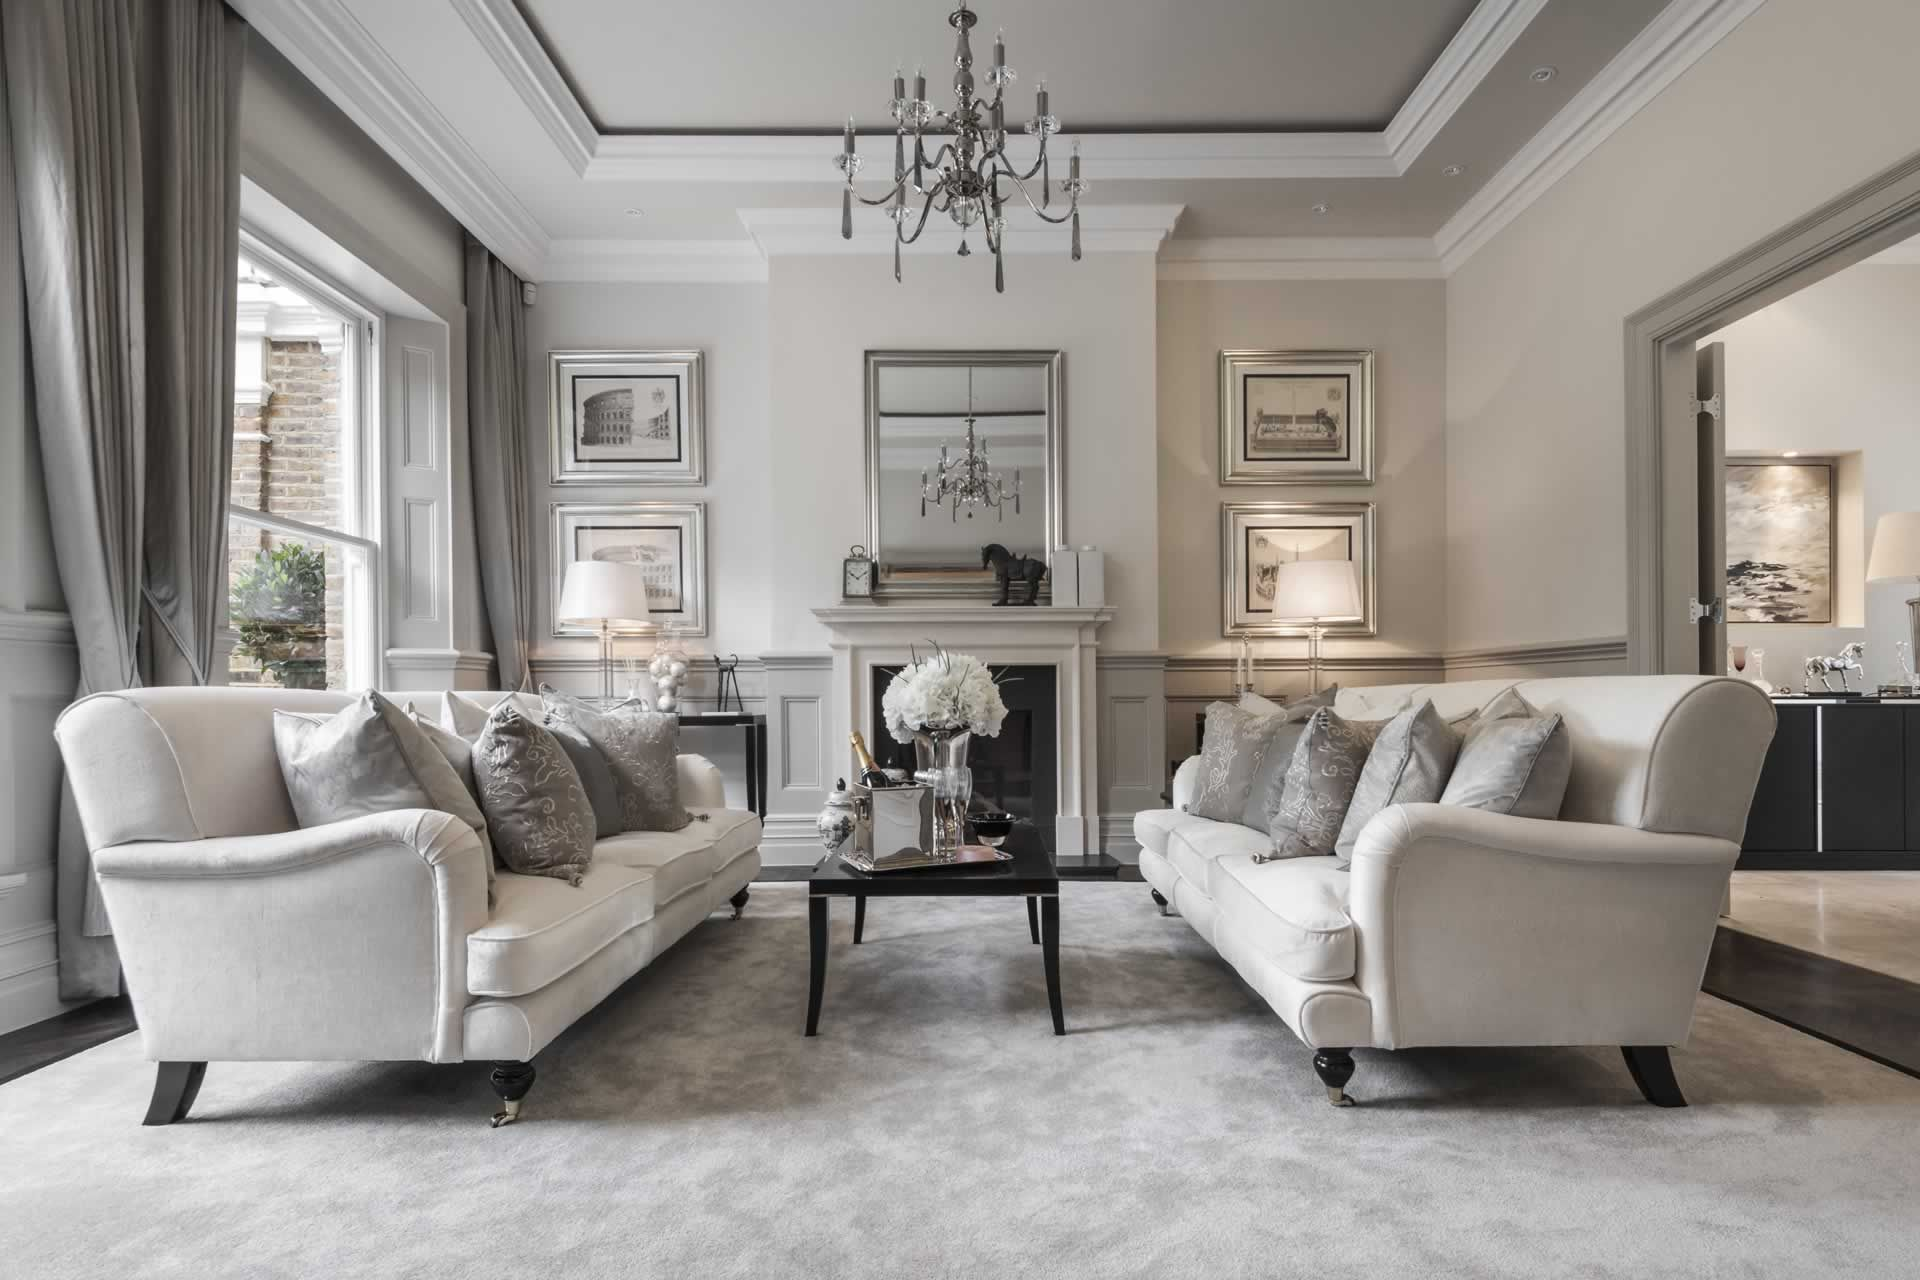 Alexander james interiors carry out  full range of interior design services for show homes and leading property developers also senior living project pinterest room rh